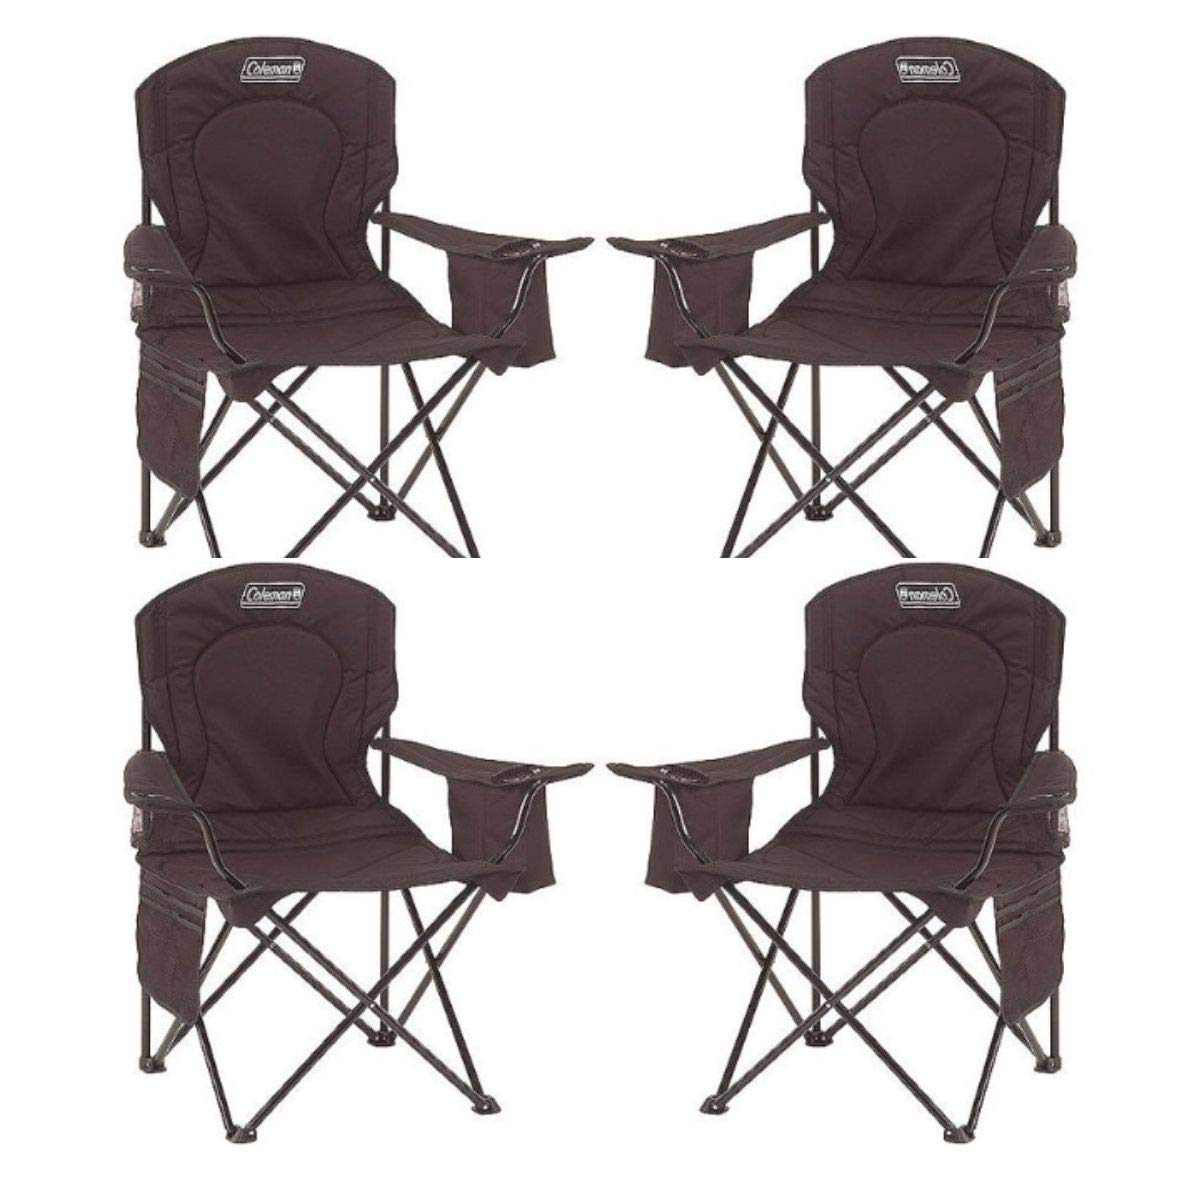 Coleman Oversized Quad Chair with Cooler Pouch (Black/Set of 4) by Coleman